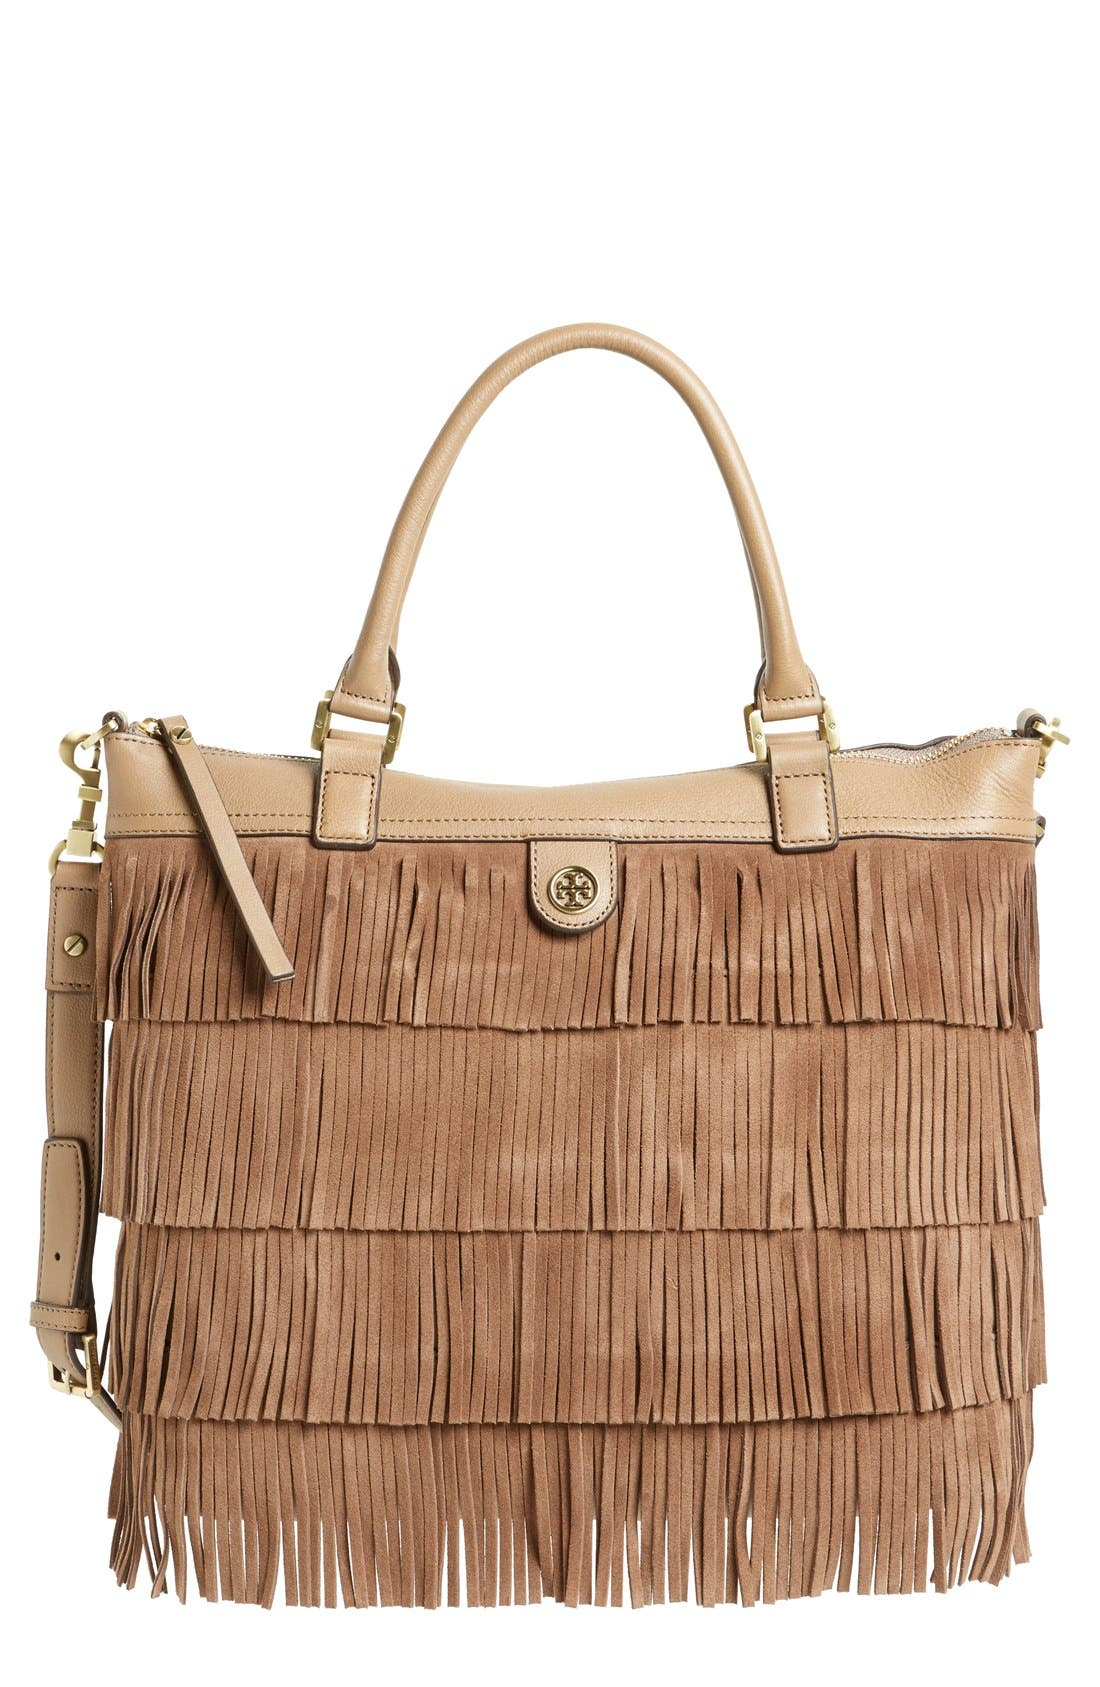 Main Image - Tory Burch Fringe Leather Tote